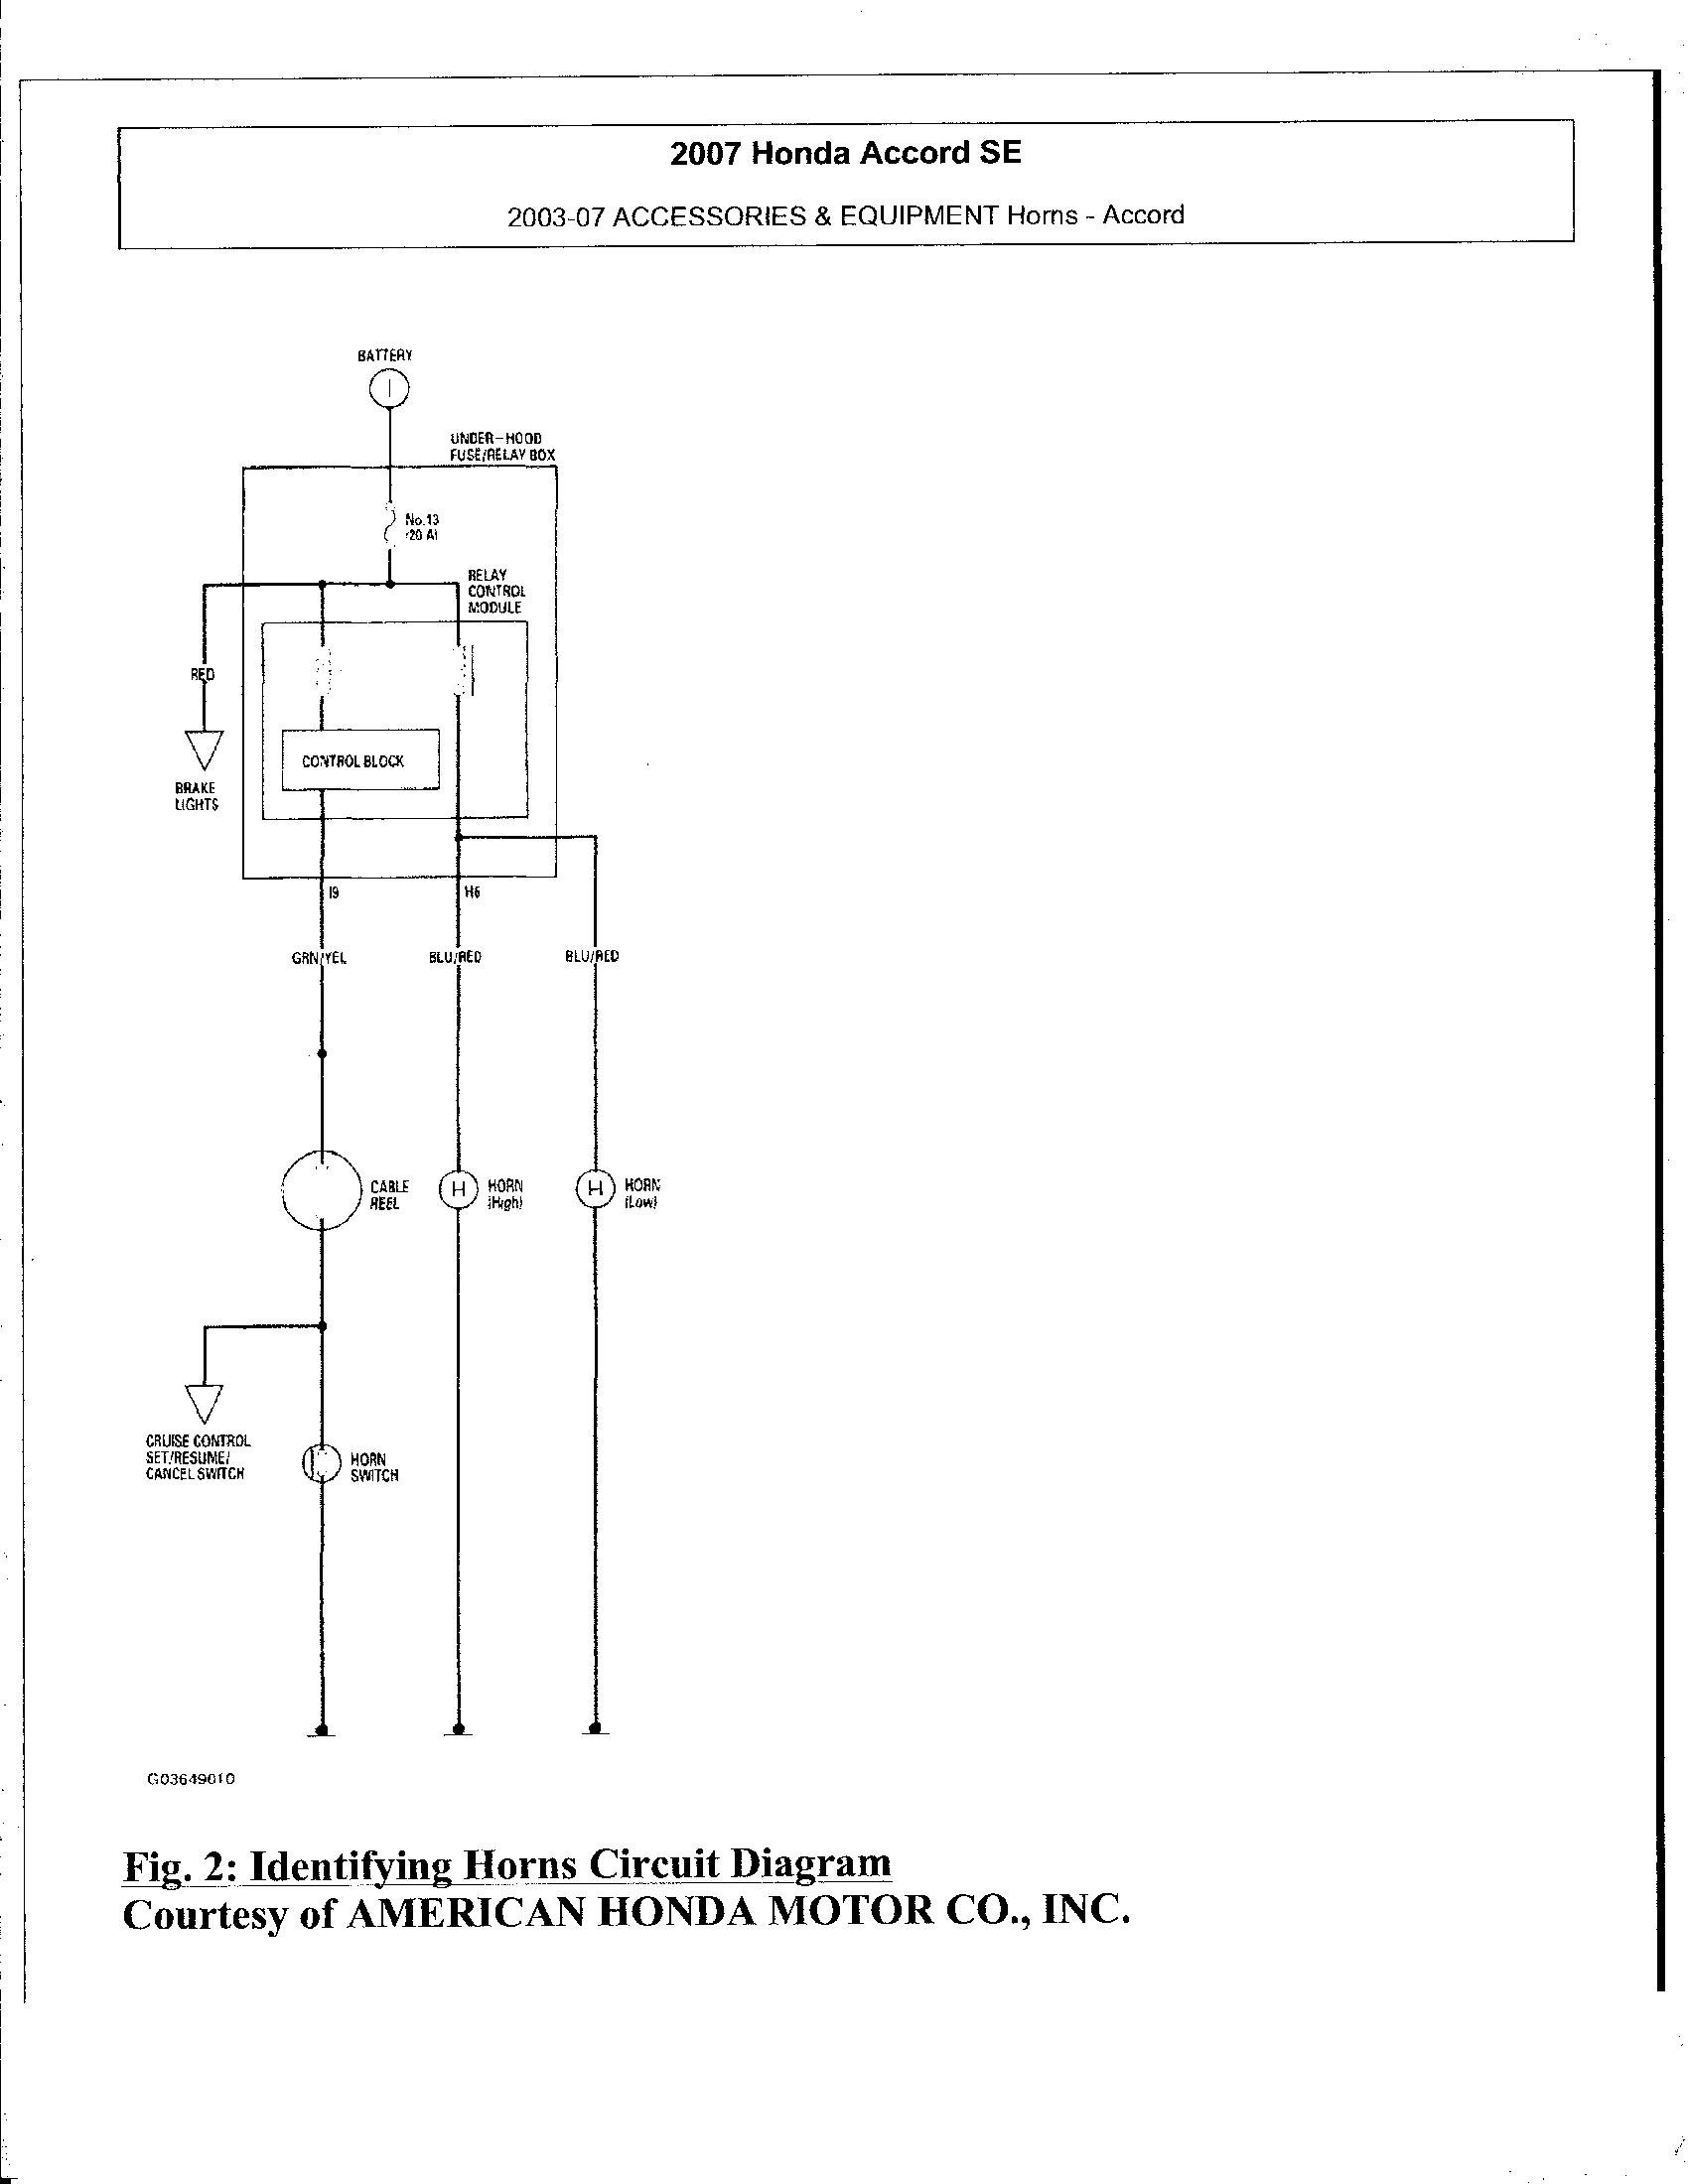 1990 honda accord horn wiring diagram 2003 honda accord horn starting blowing by itself about 3 months  2003 honda accord horn starting blowing